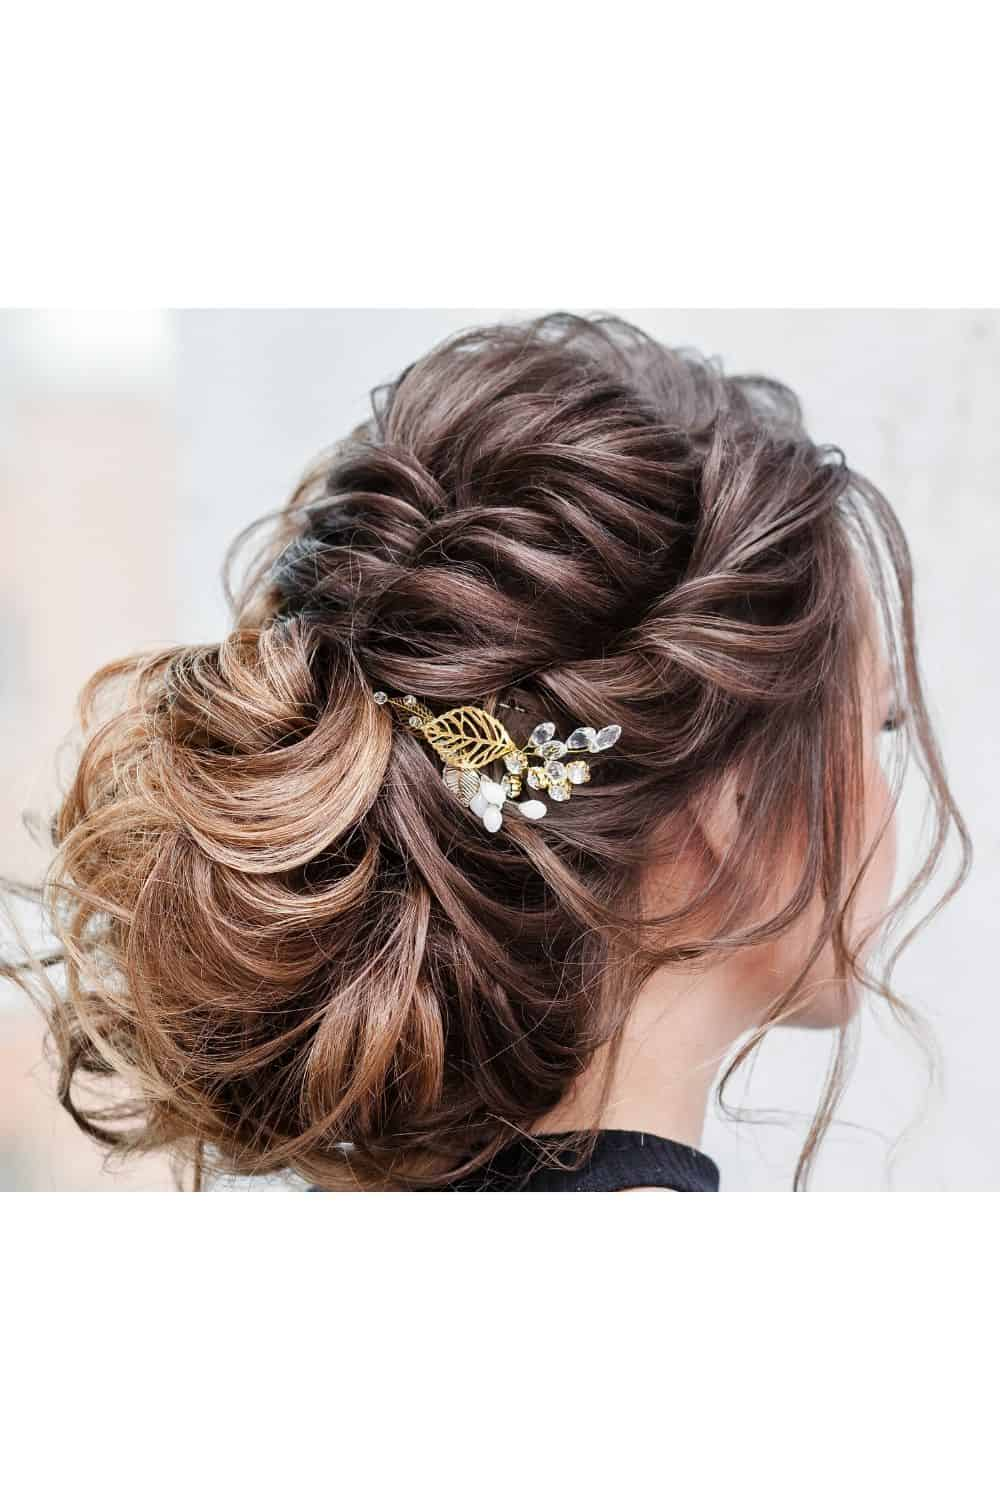 perfect for prom, prom dress, waterfall braids, micro braids, solid color, braided styles, double braid, nail polishes, black hair